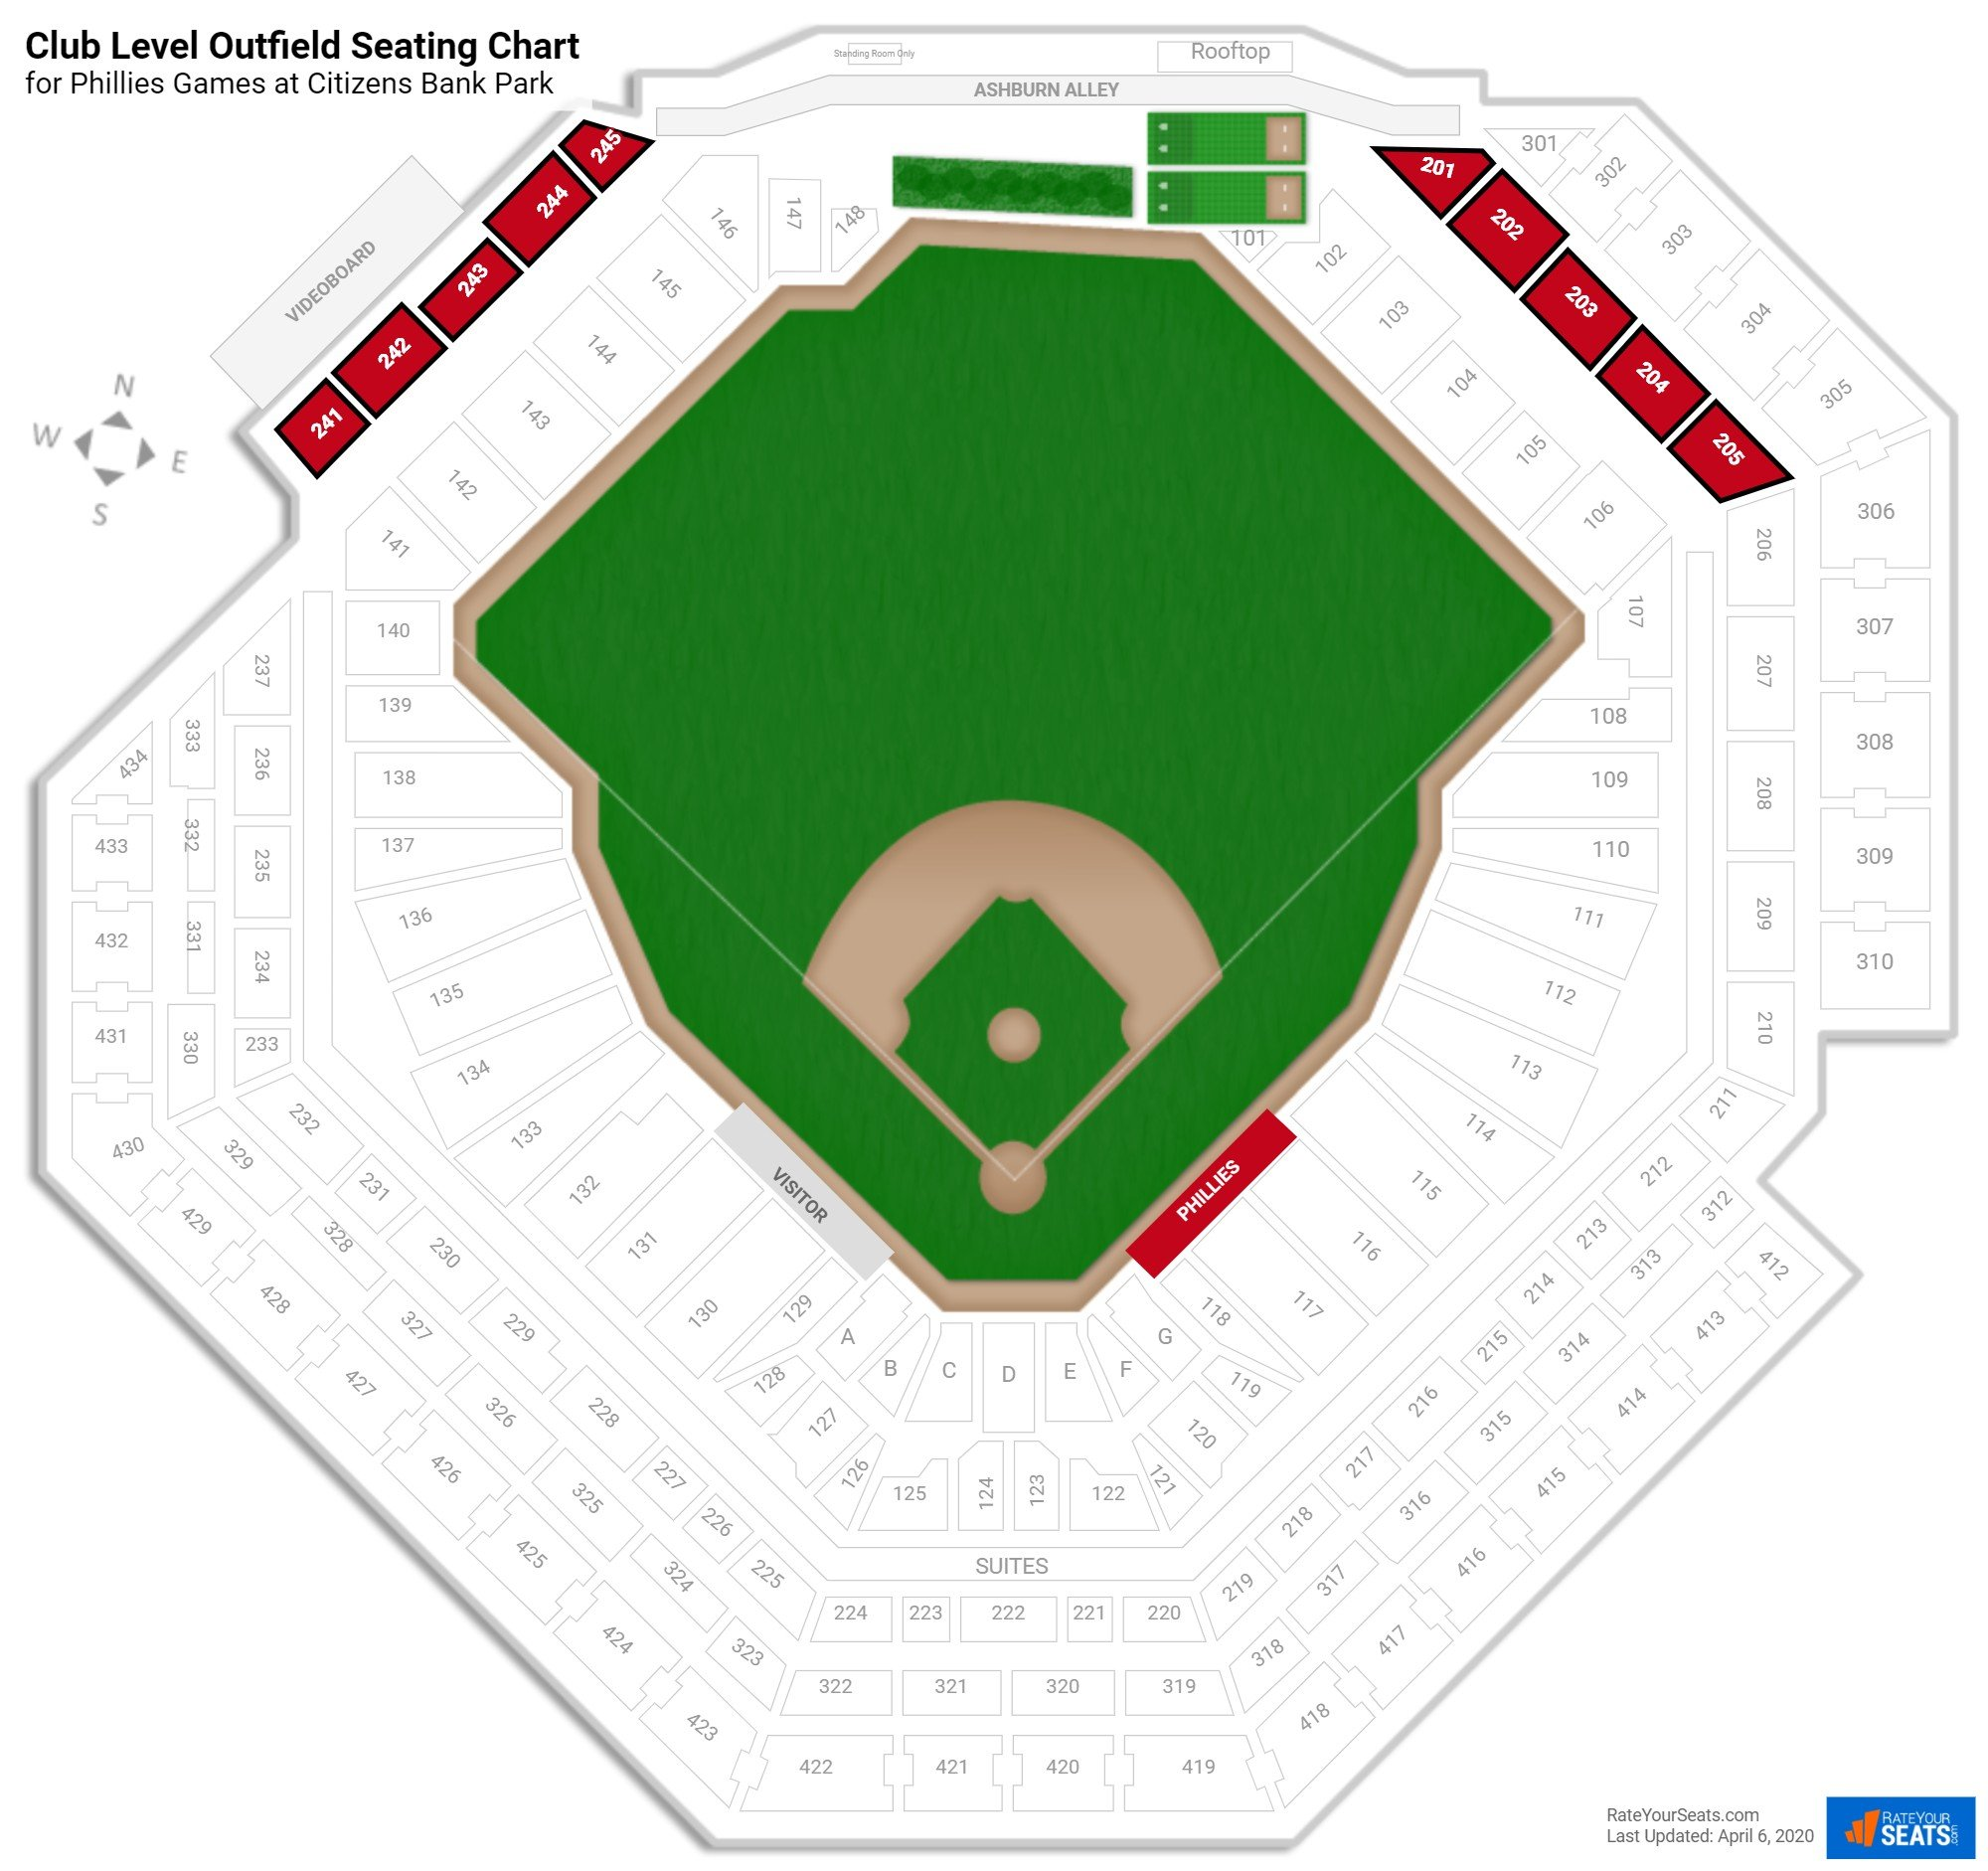 Citizens Bank Park Club Level Outfield seating chart